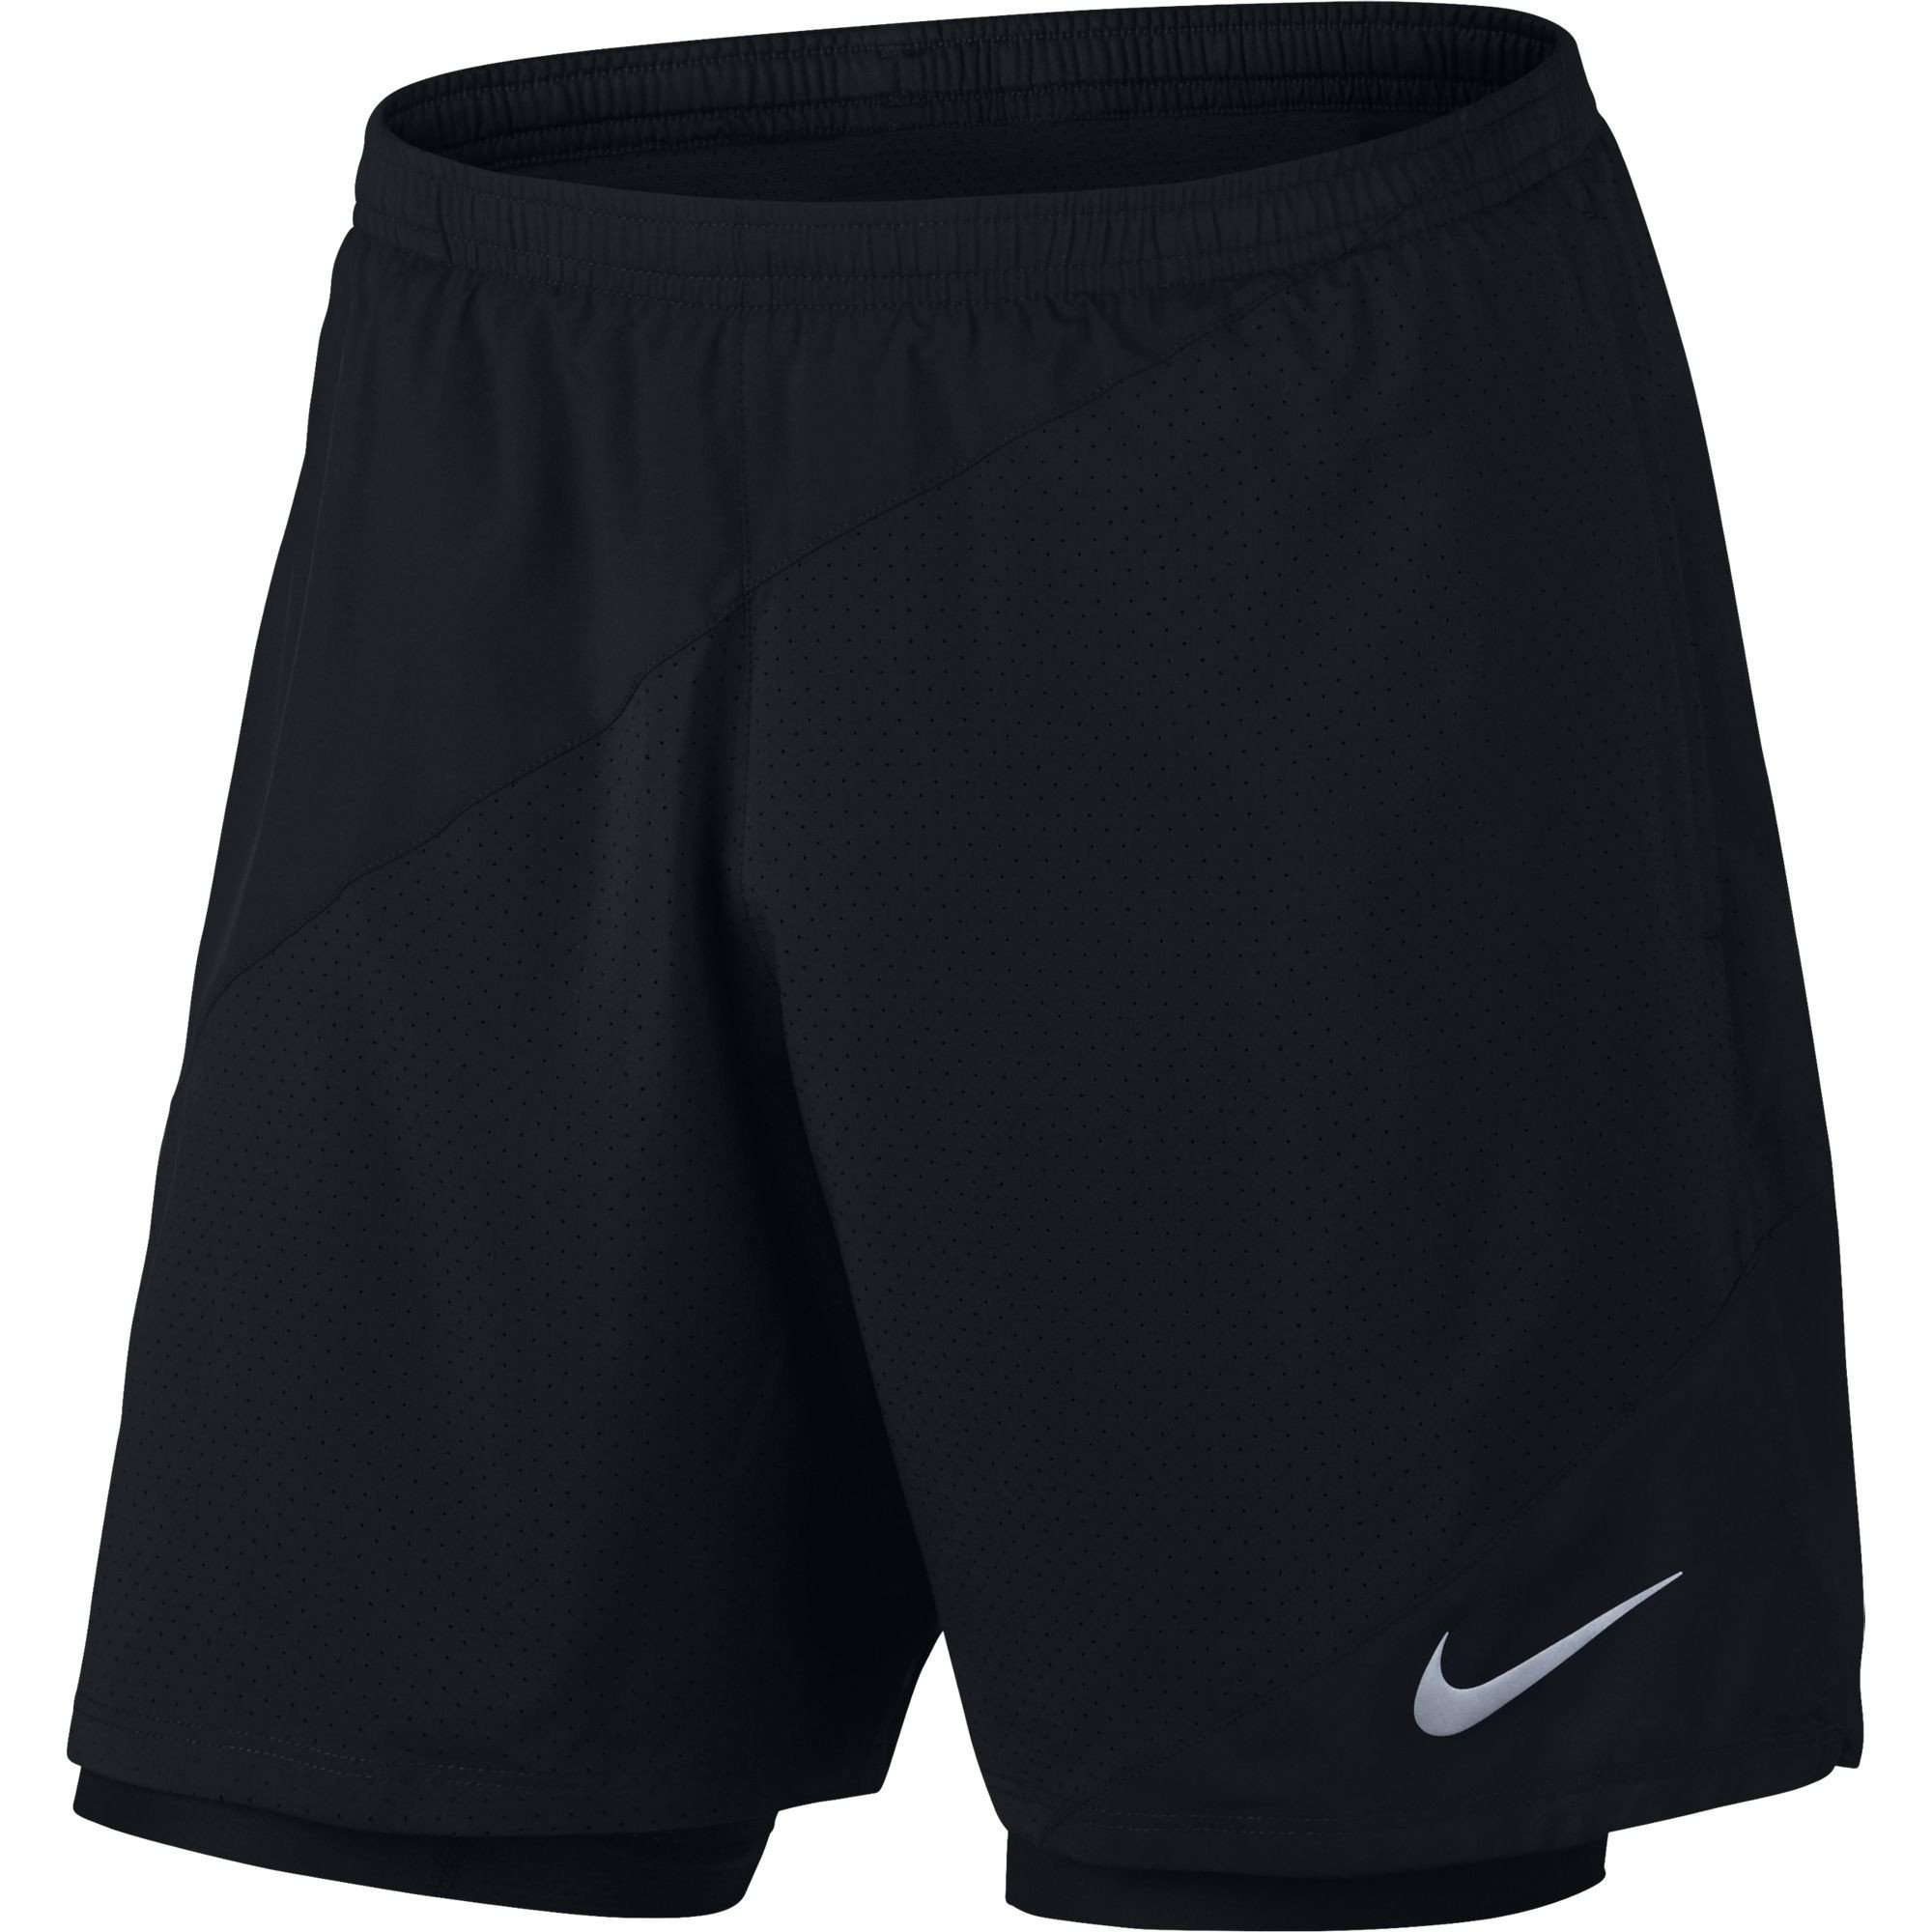 "Men's Nike Flex 2-in-1 7"" Running Short - BlackToe Running Inc. - Toronto Running Specialty Store"